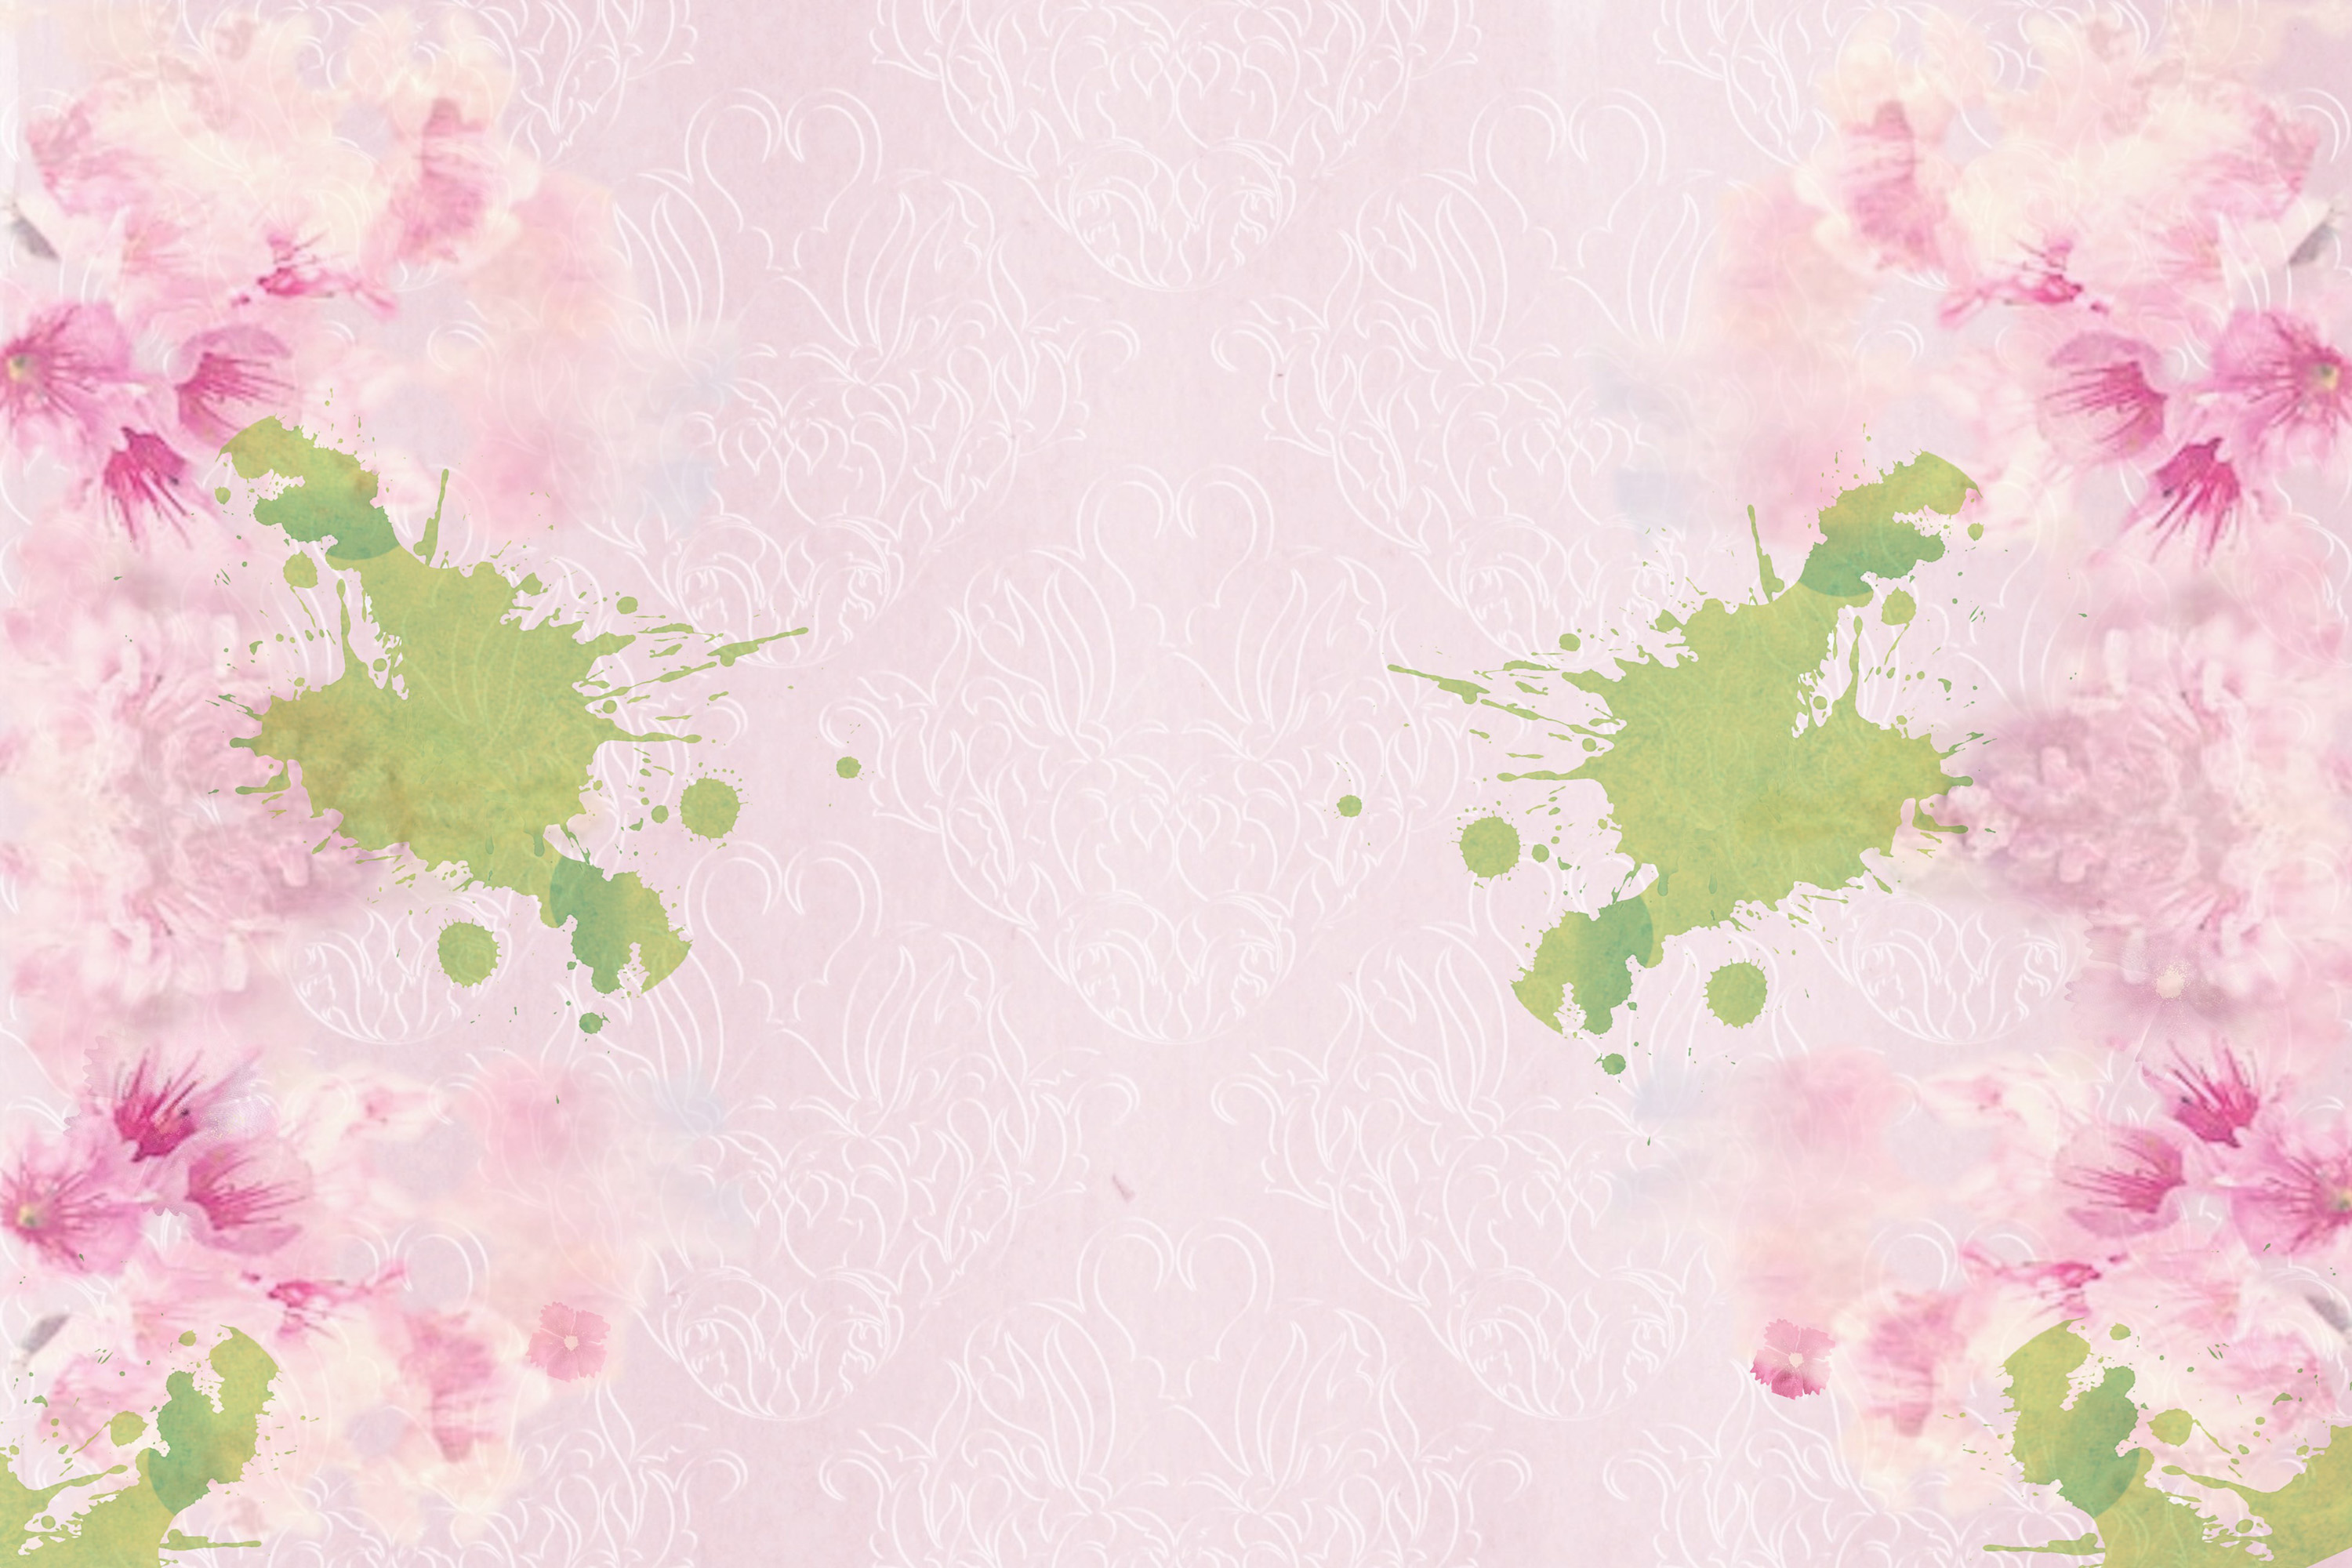 Watercolour Florals Journal Backgrounds 28 pages example image 3